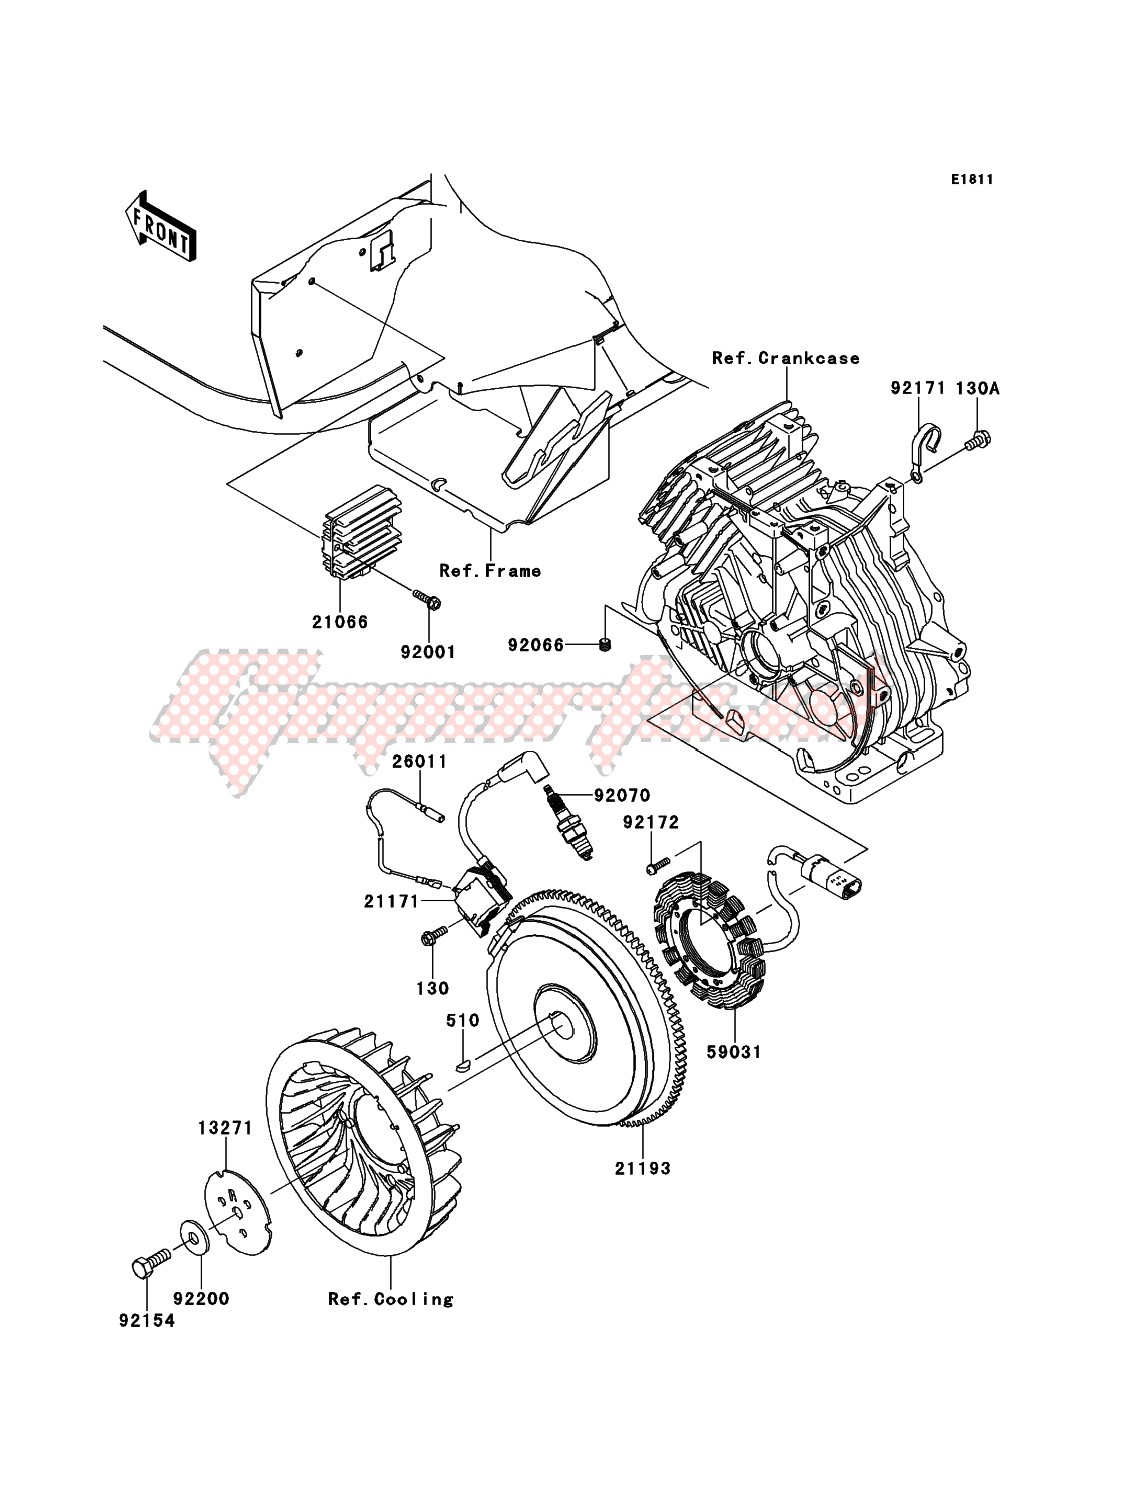 Engine-Generator/Ignition Coil